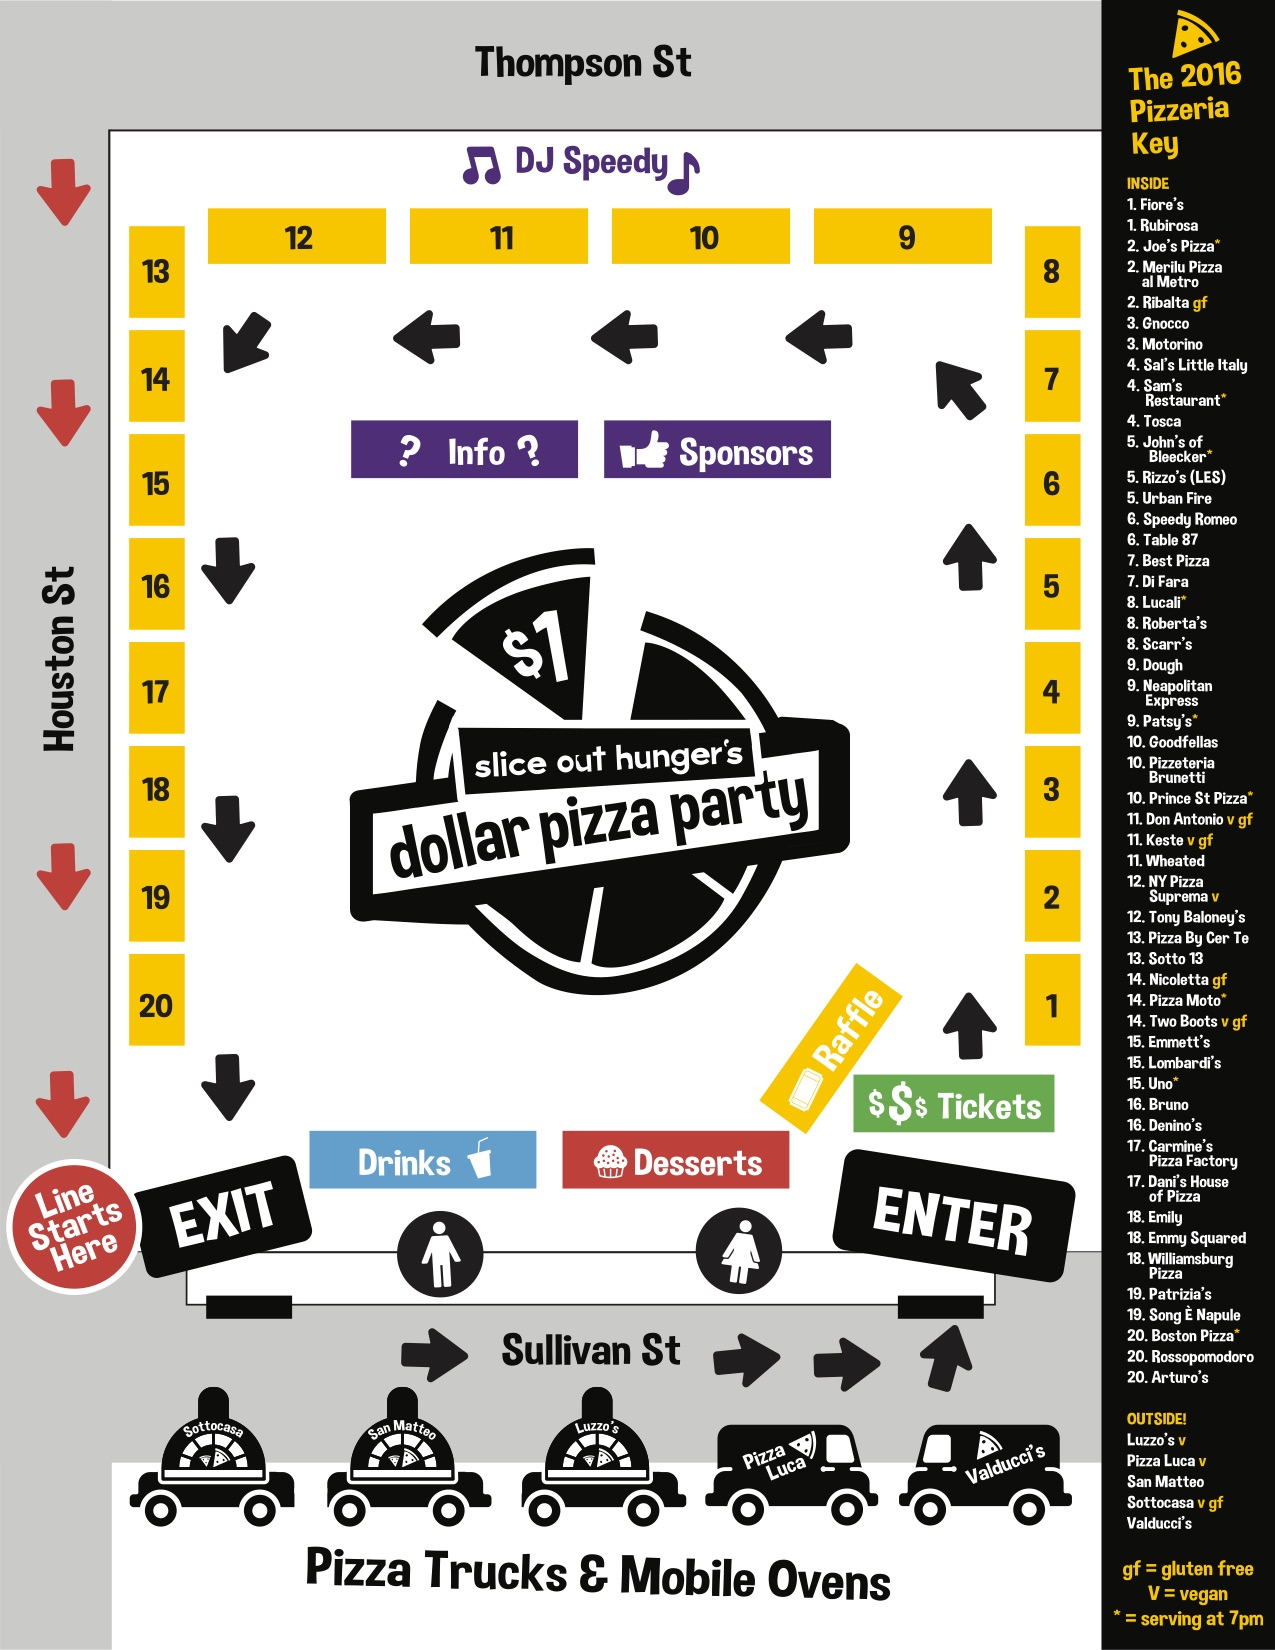 Use this map to plan your ultimate pie! You'll hit the mobile ovens and pizza trucks first, then head inside to the main event space.